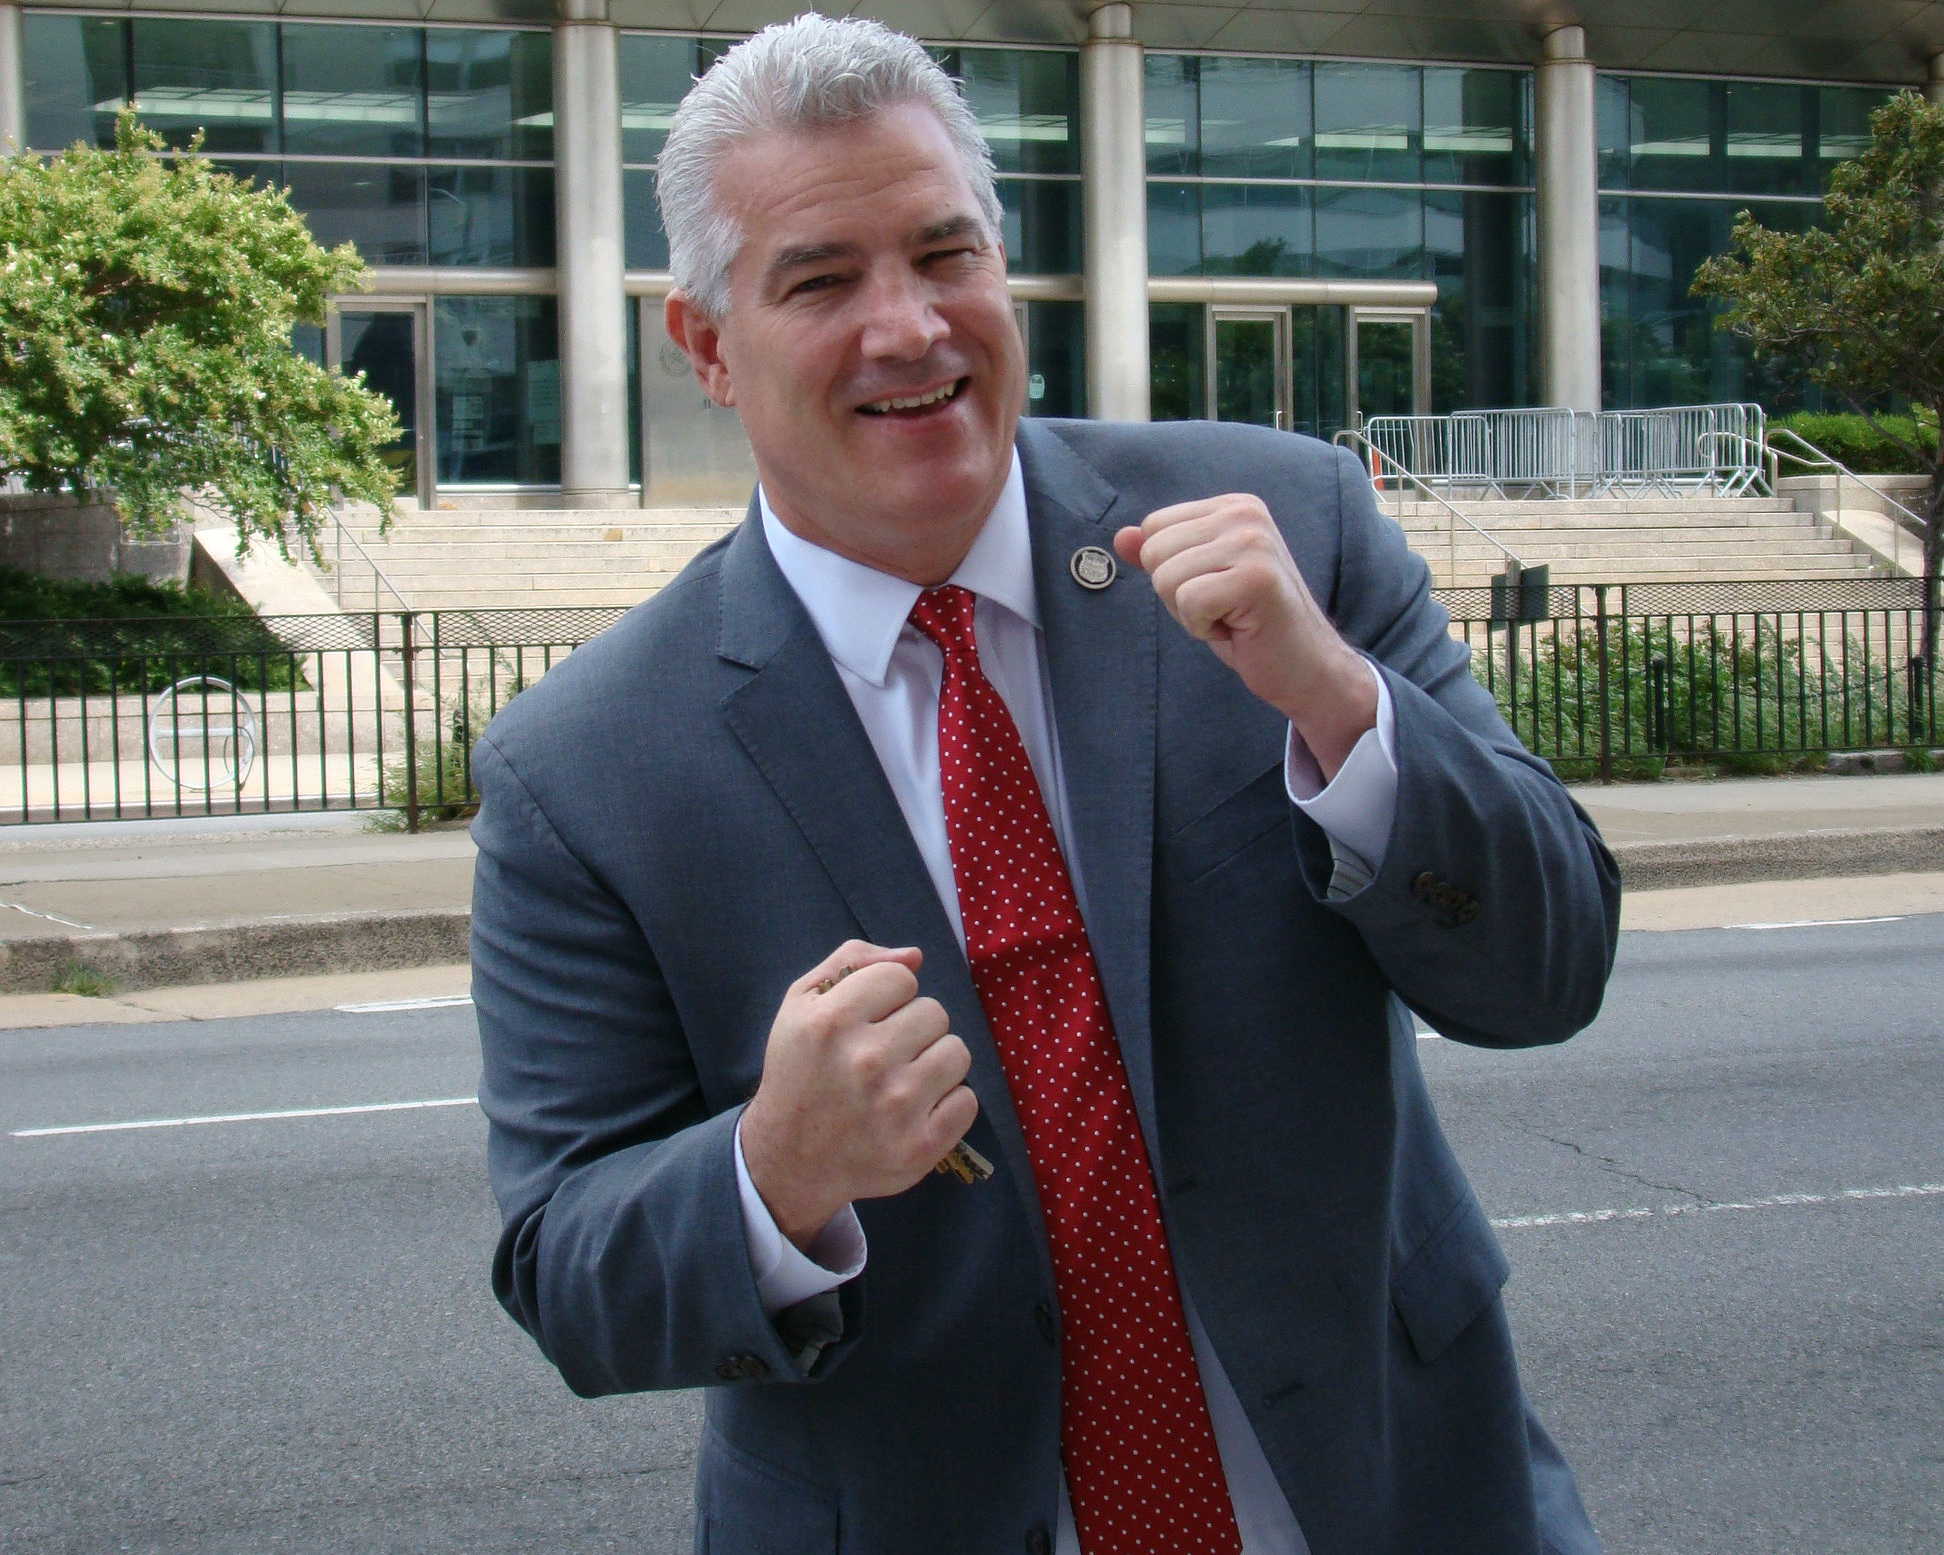 Defense attorney Joe Murray is the Republican candidate for Queens DA. Photo courtesy of Murray.